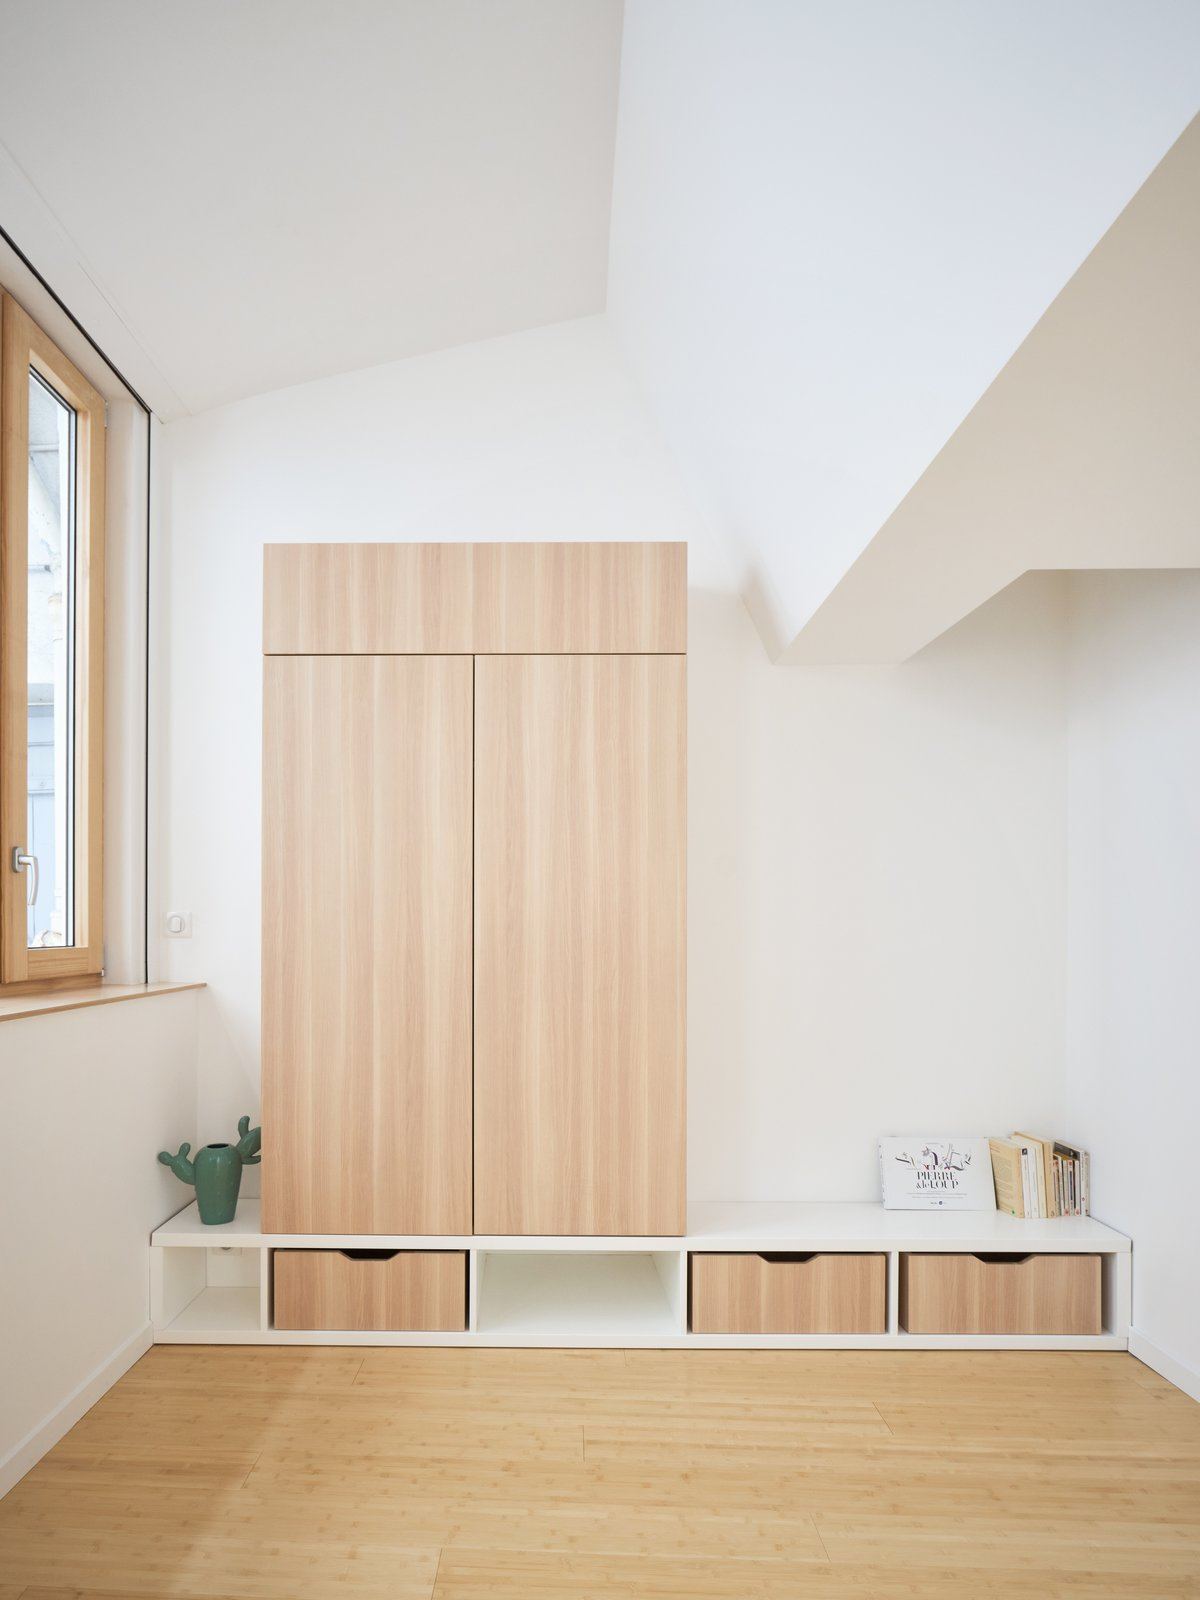 A discreet built-in wardrobe in the bedroom.